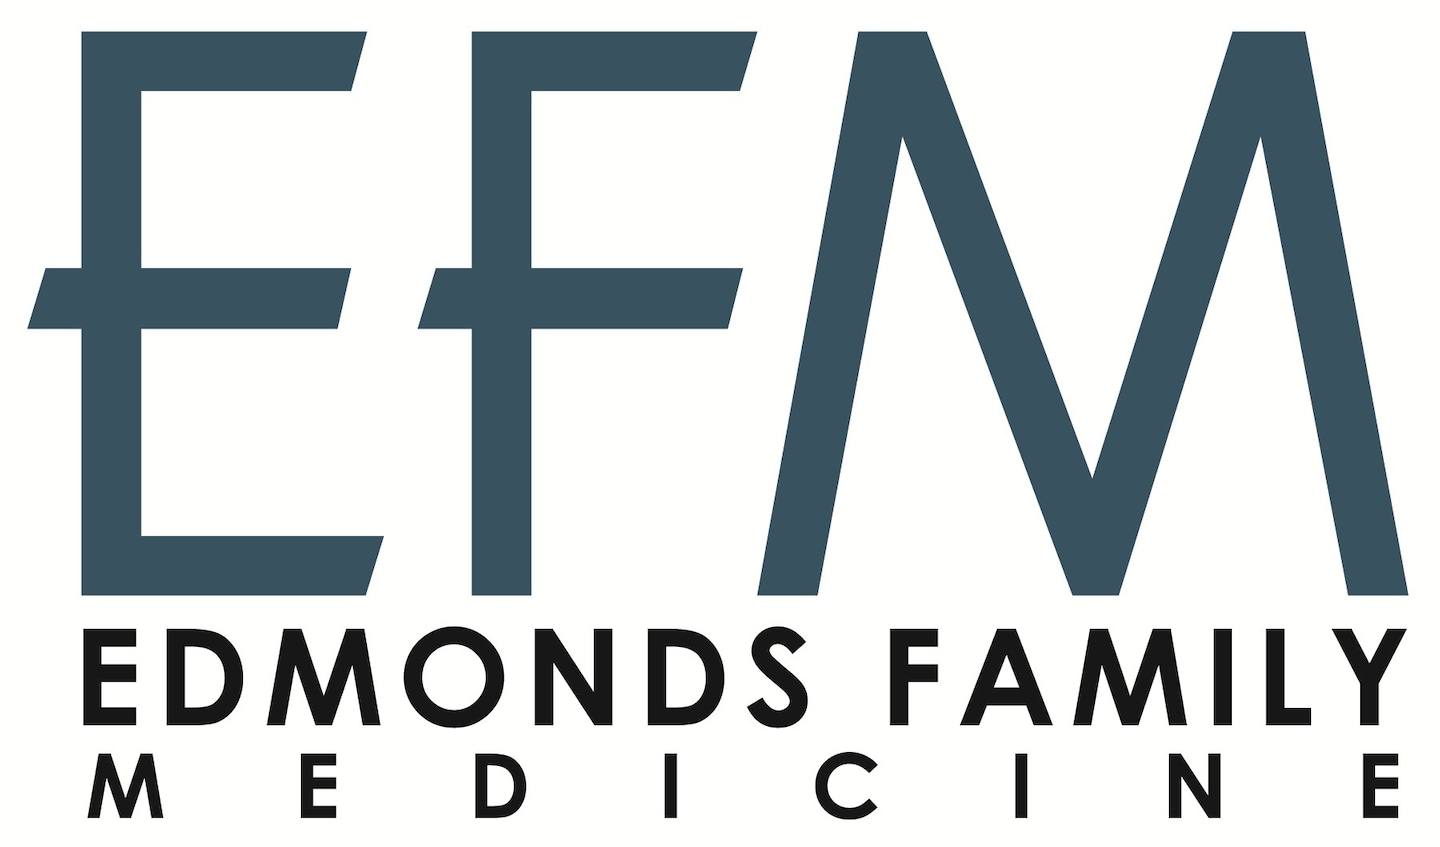 Edmonds Family Medicine